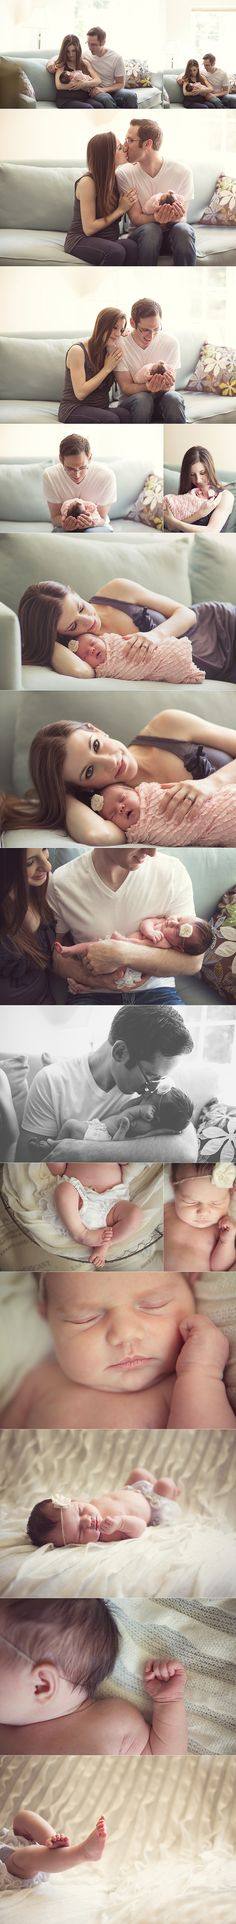 Lifestyle Newborn--exactly what i want our newborn pictures to be like!